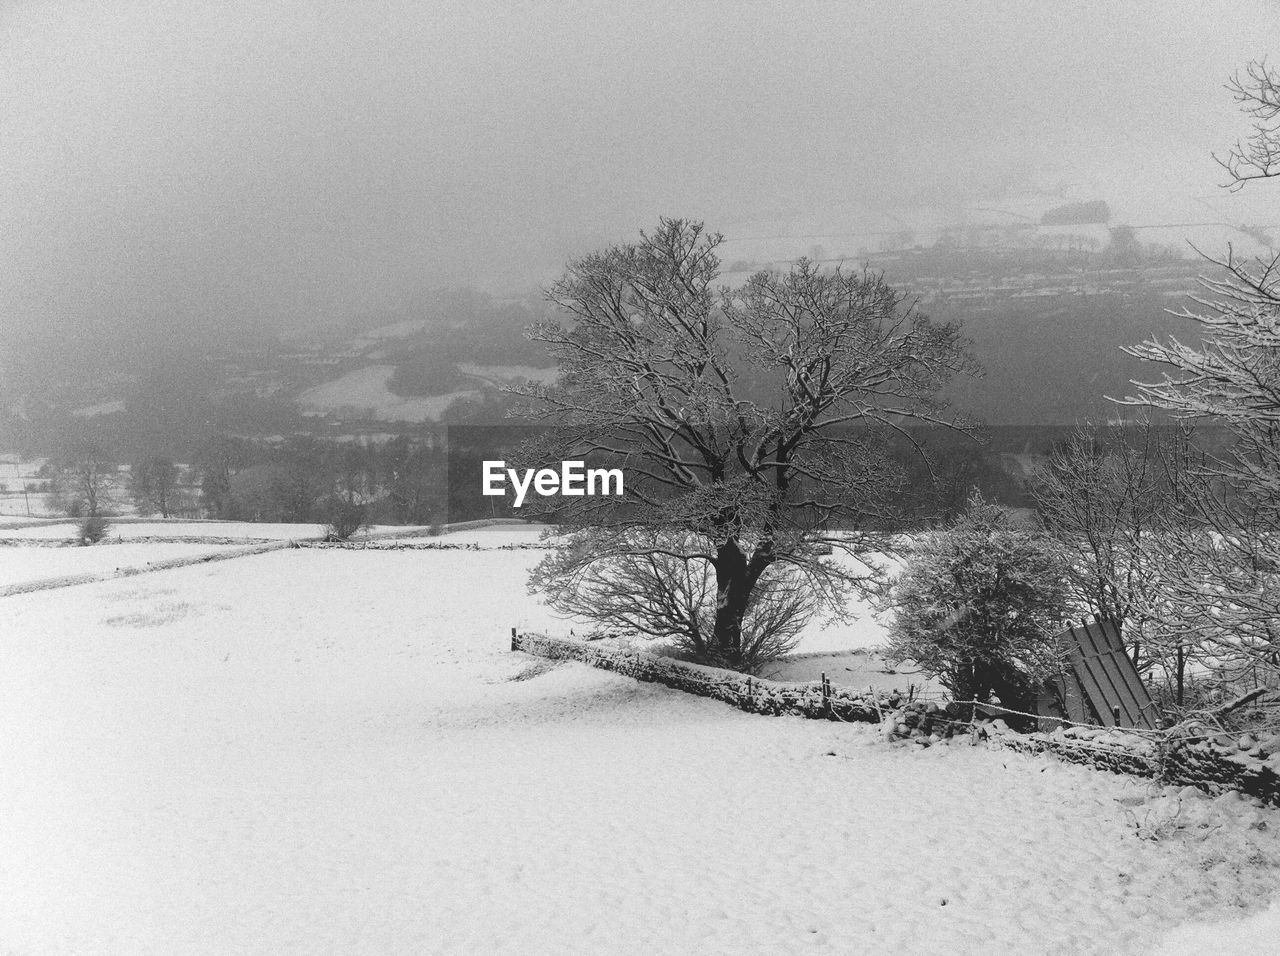 Trees on snow covered field against sky during foggy weather